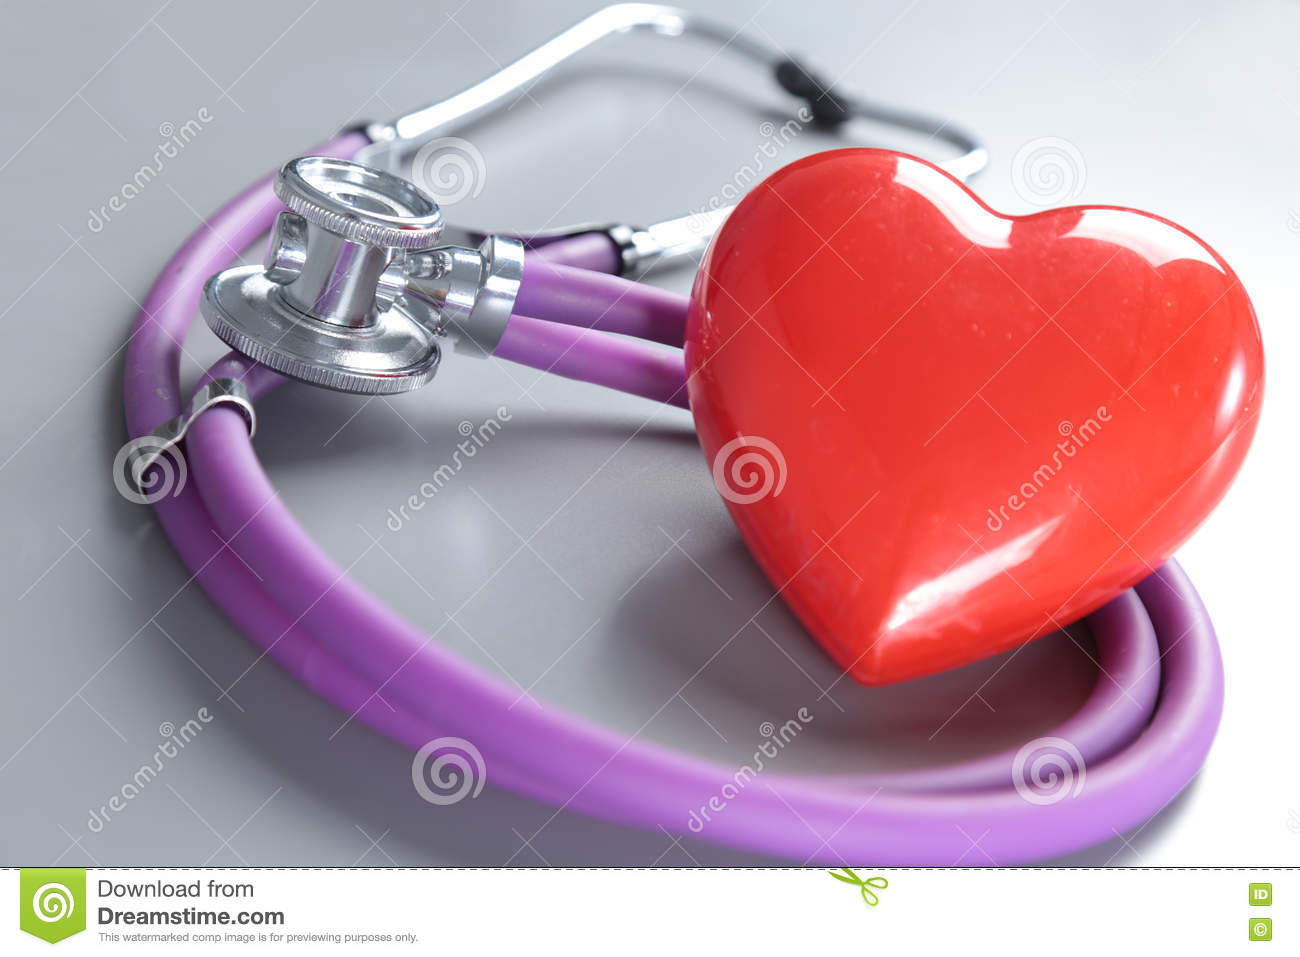 Medical Instruments, Stethoscope And Red Heart For ENT Stock